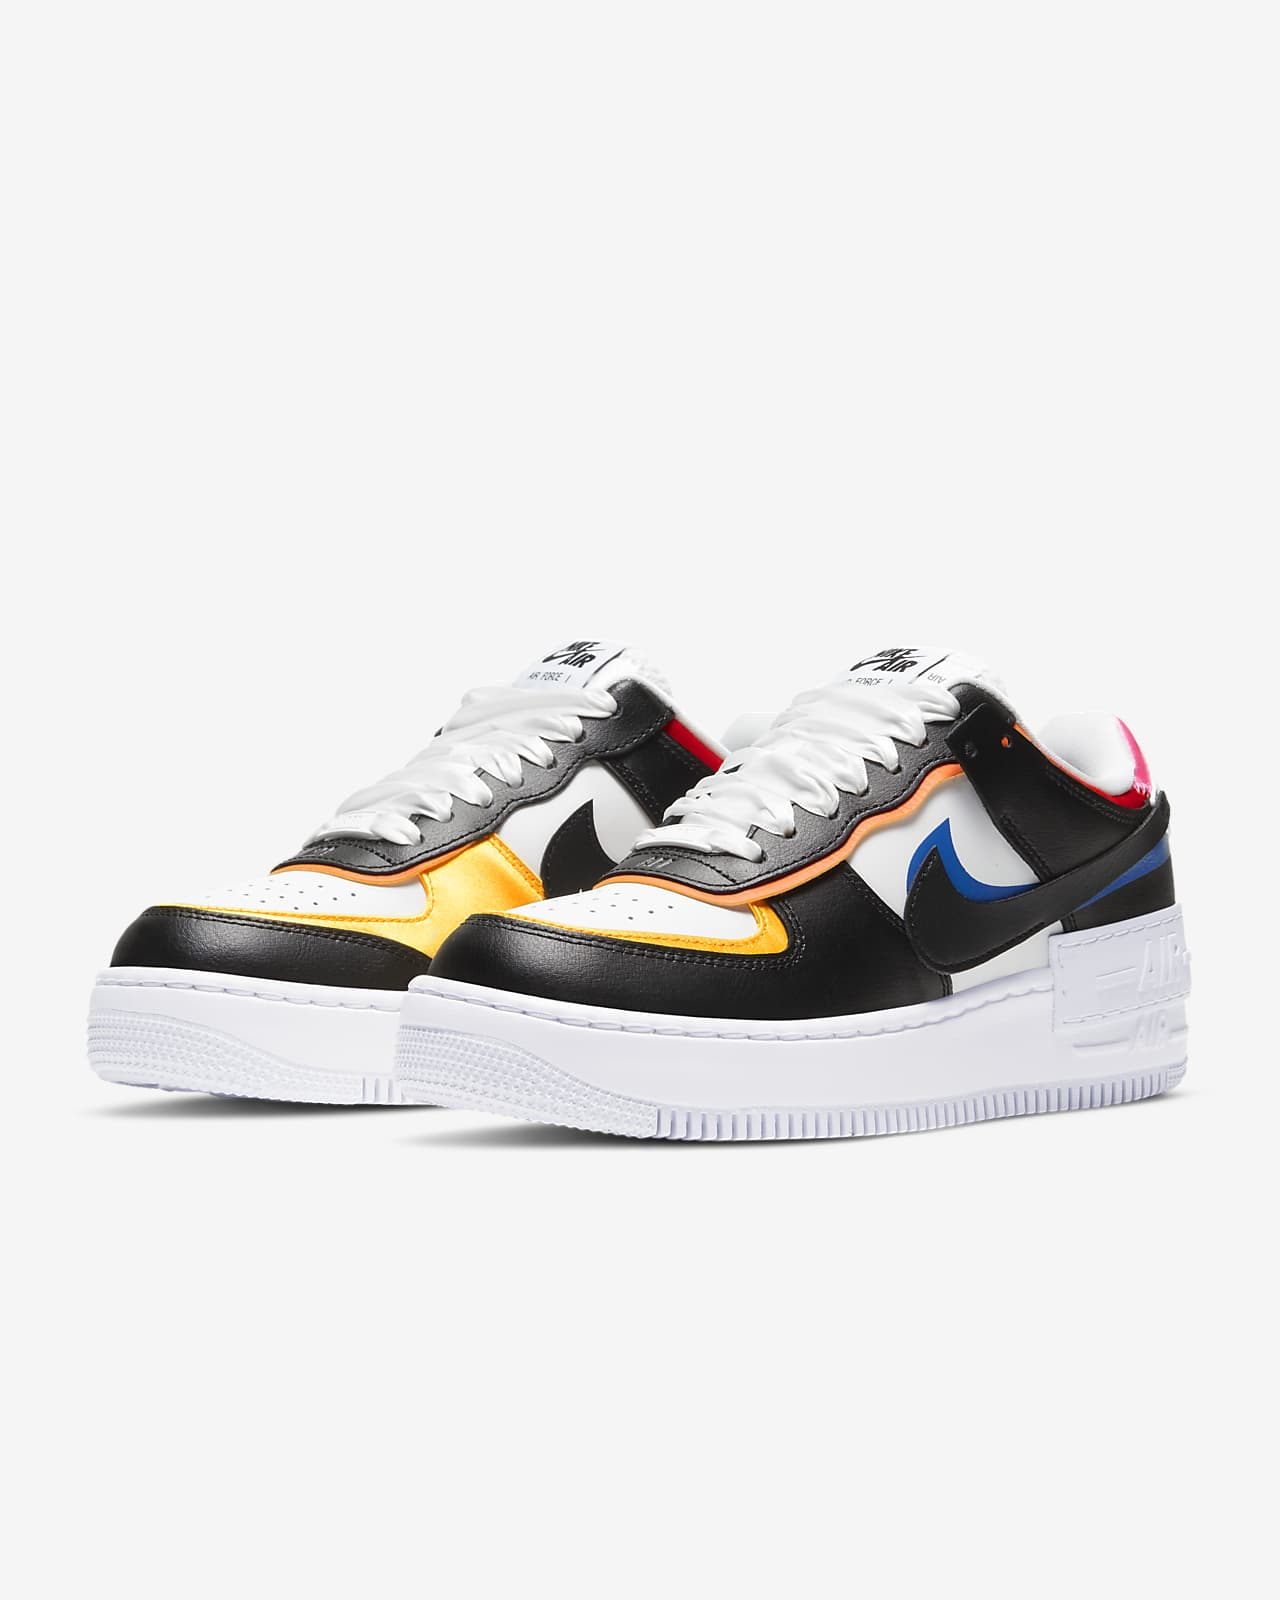 Nike Air Force 1 Shadow Women S Shoe Nike Lu Nike air force 1 high '07 premium. nike air force 1 shadow women s shoe